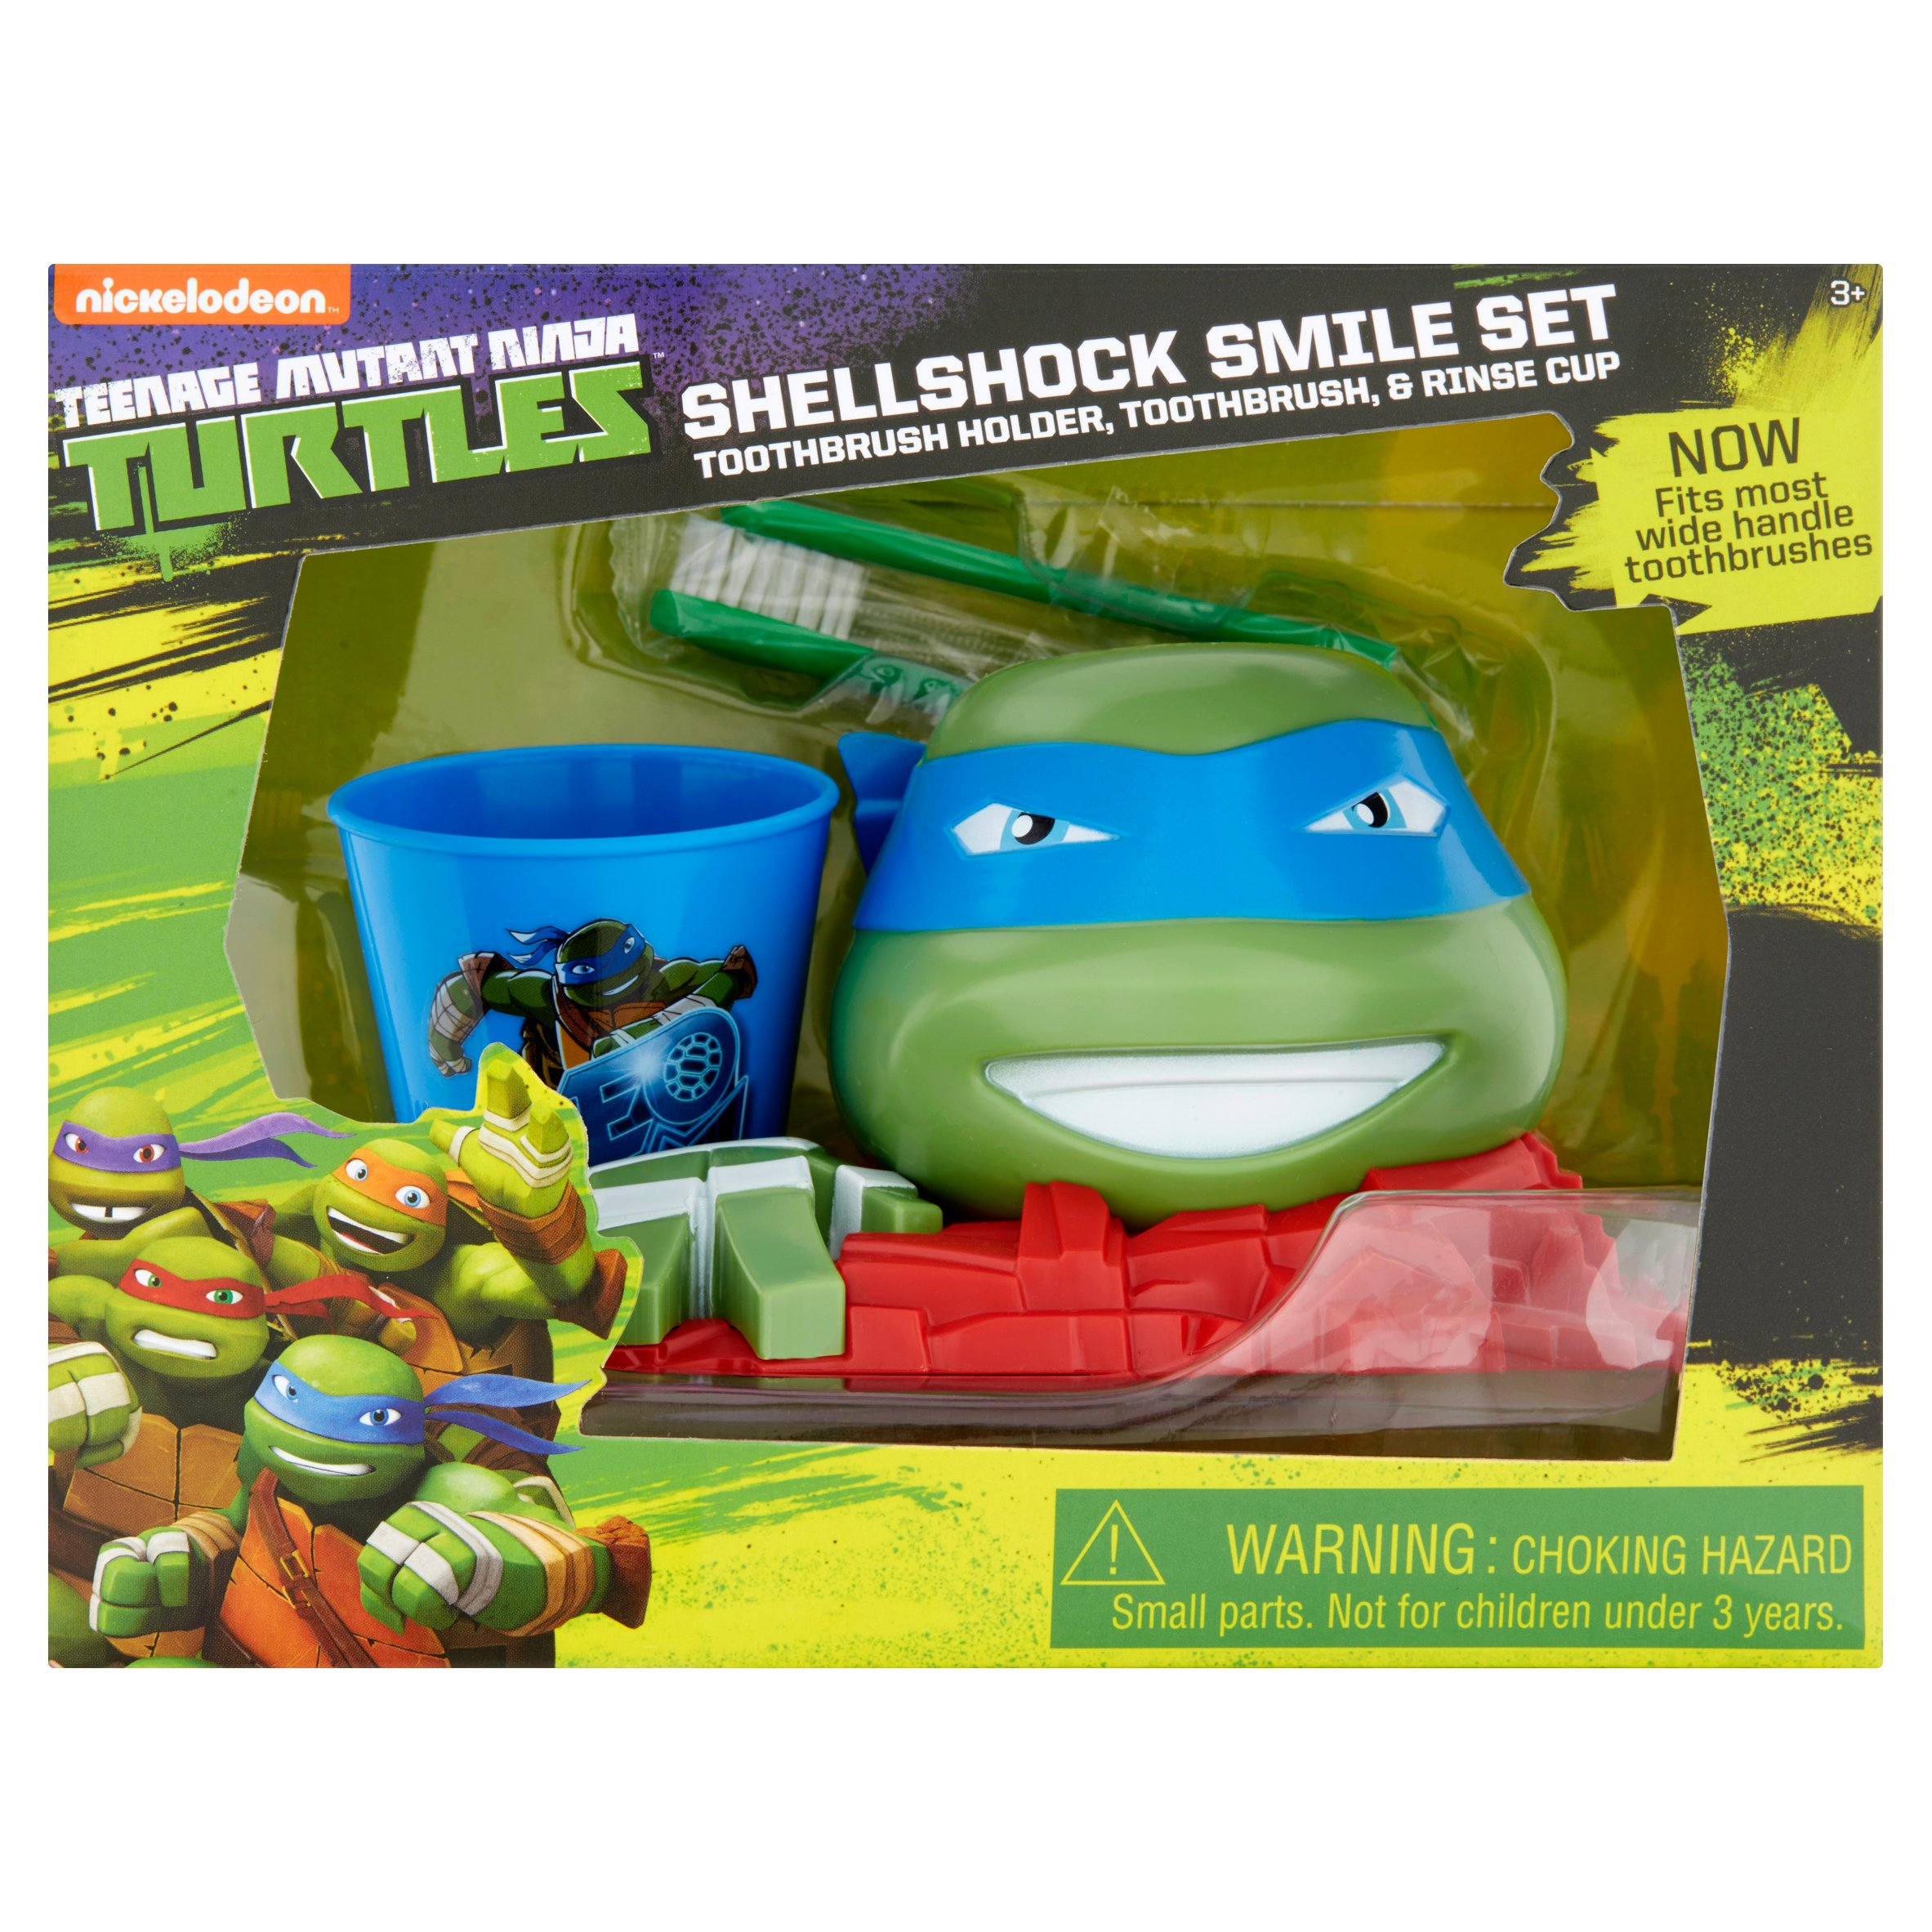 Teenage Mutant Ninja Turtles Shellshock Toothbrush, Toothbrush Holder, Rinse Cup Gift Set, 3pcs